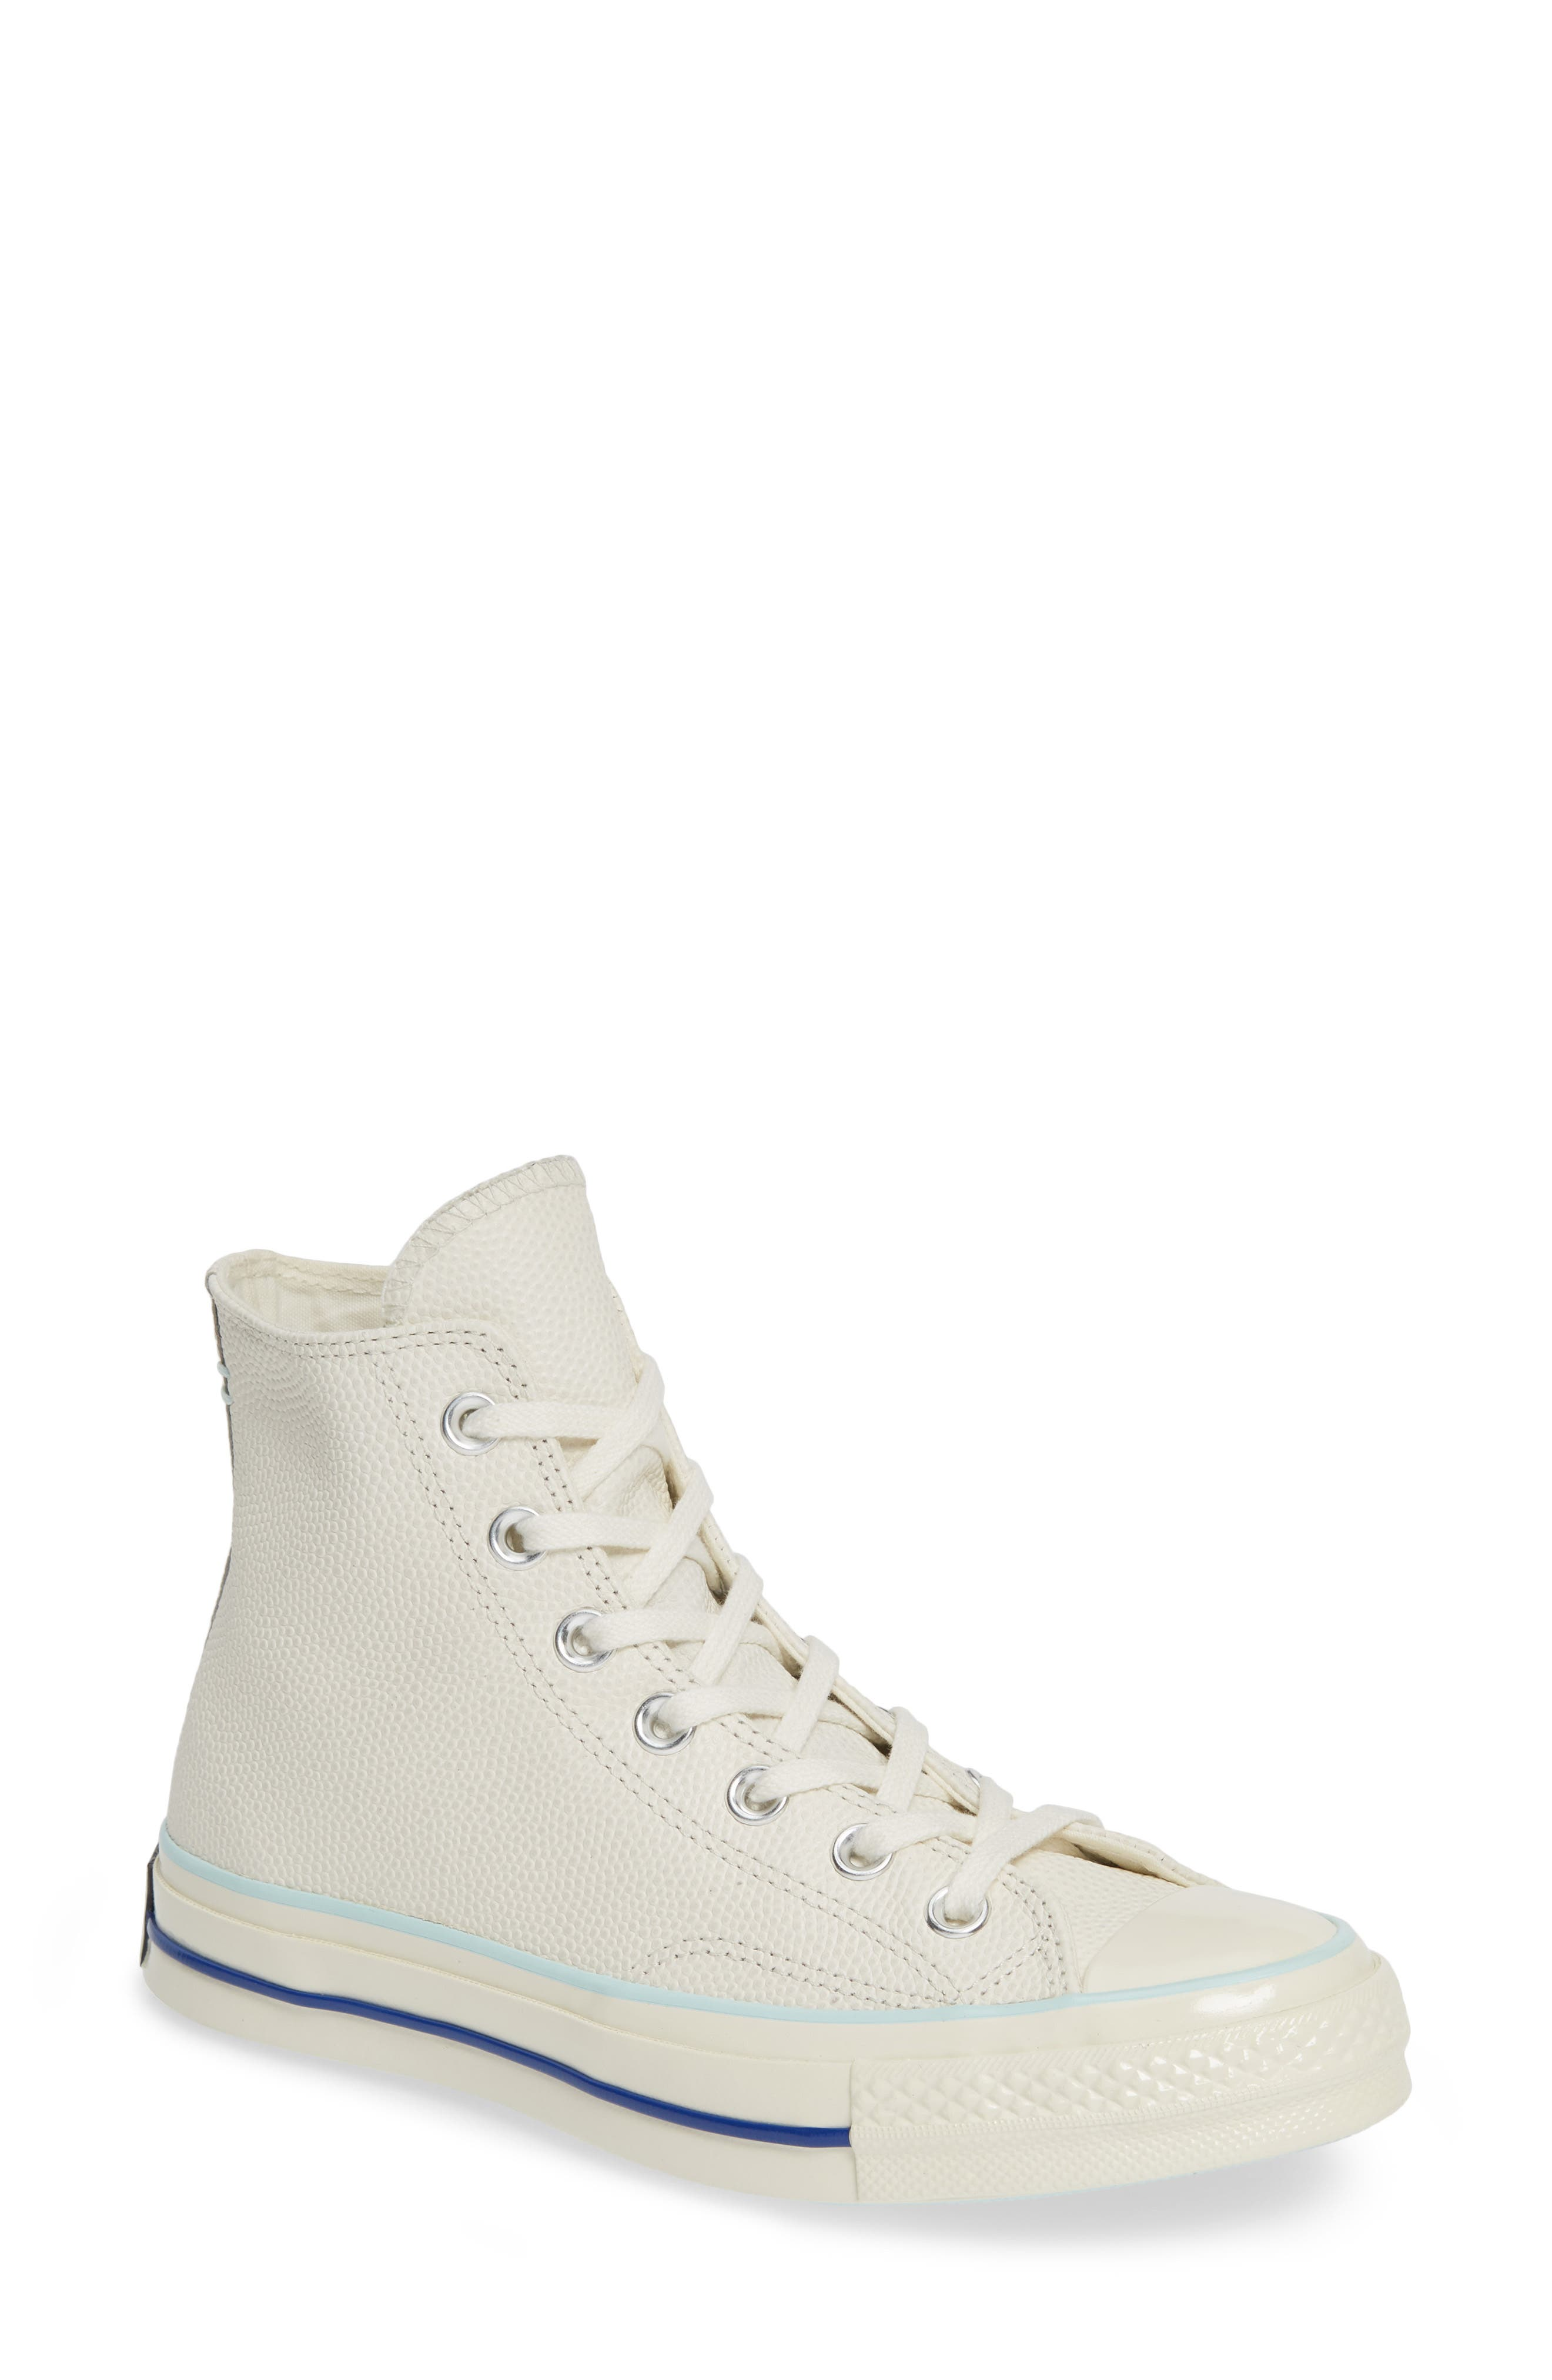 cd9877b9e027b6 Converse Chuck Taylor All Star 70 High Top Leather Sneaker